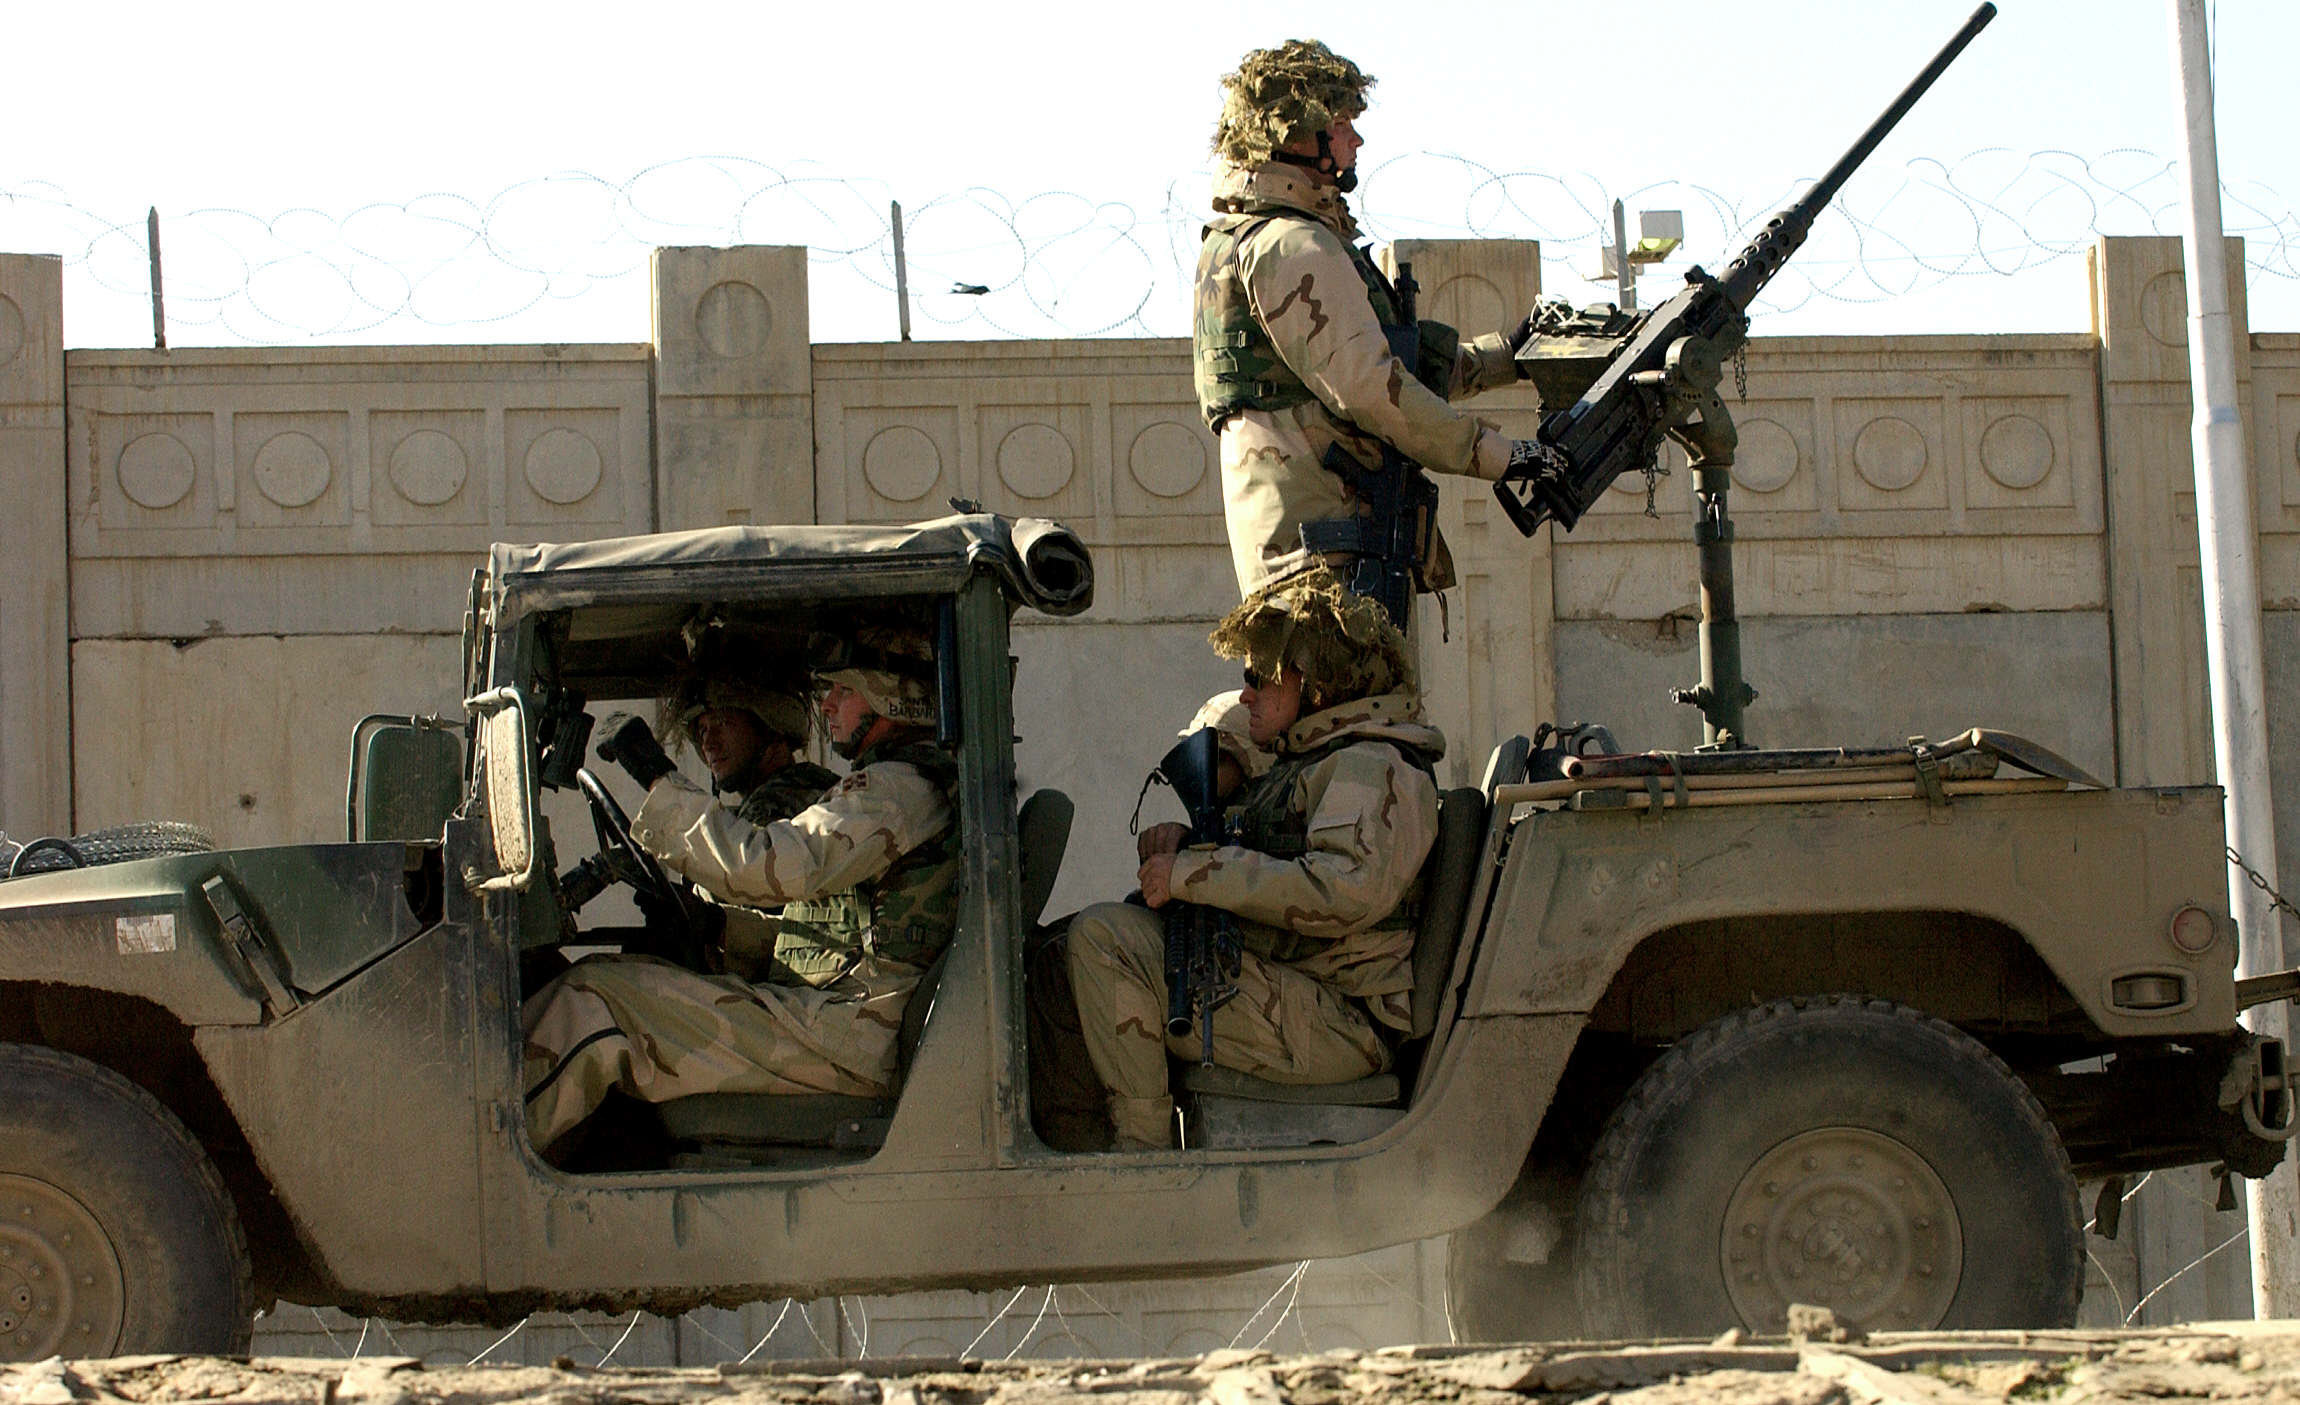 US soldiers from the 1st Battalion, 22nd Regiment of the 4th Infantry Division, ride on a military vehicle as they leave their base on a mission in Tikrit, 180 Kilometers (110 miles) north of Iraqi capital Baghdad, 30 December 2003.